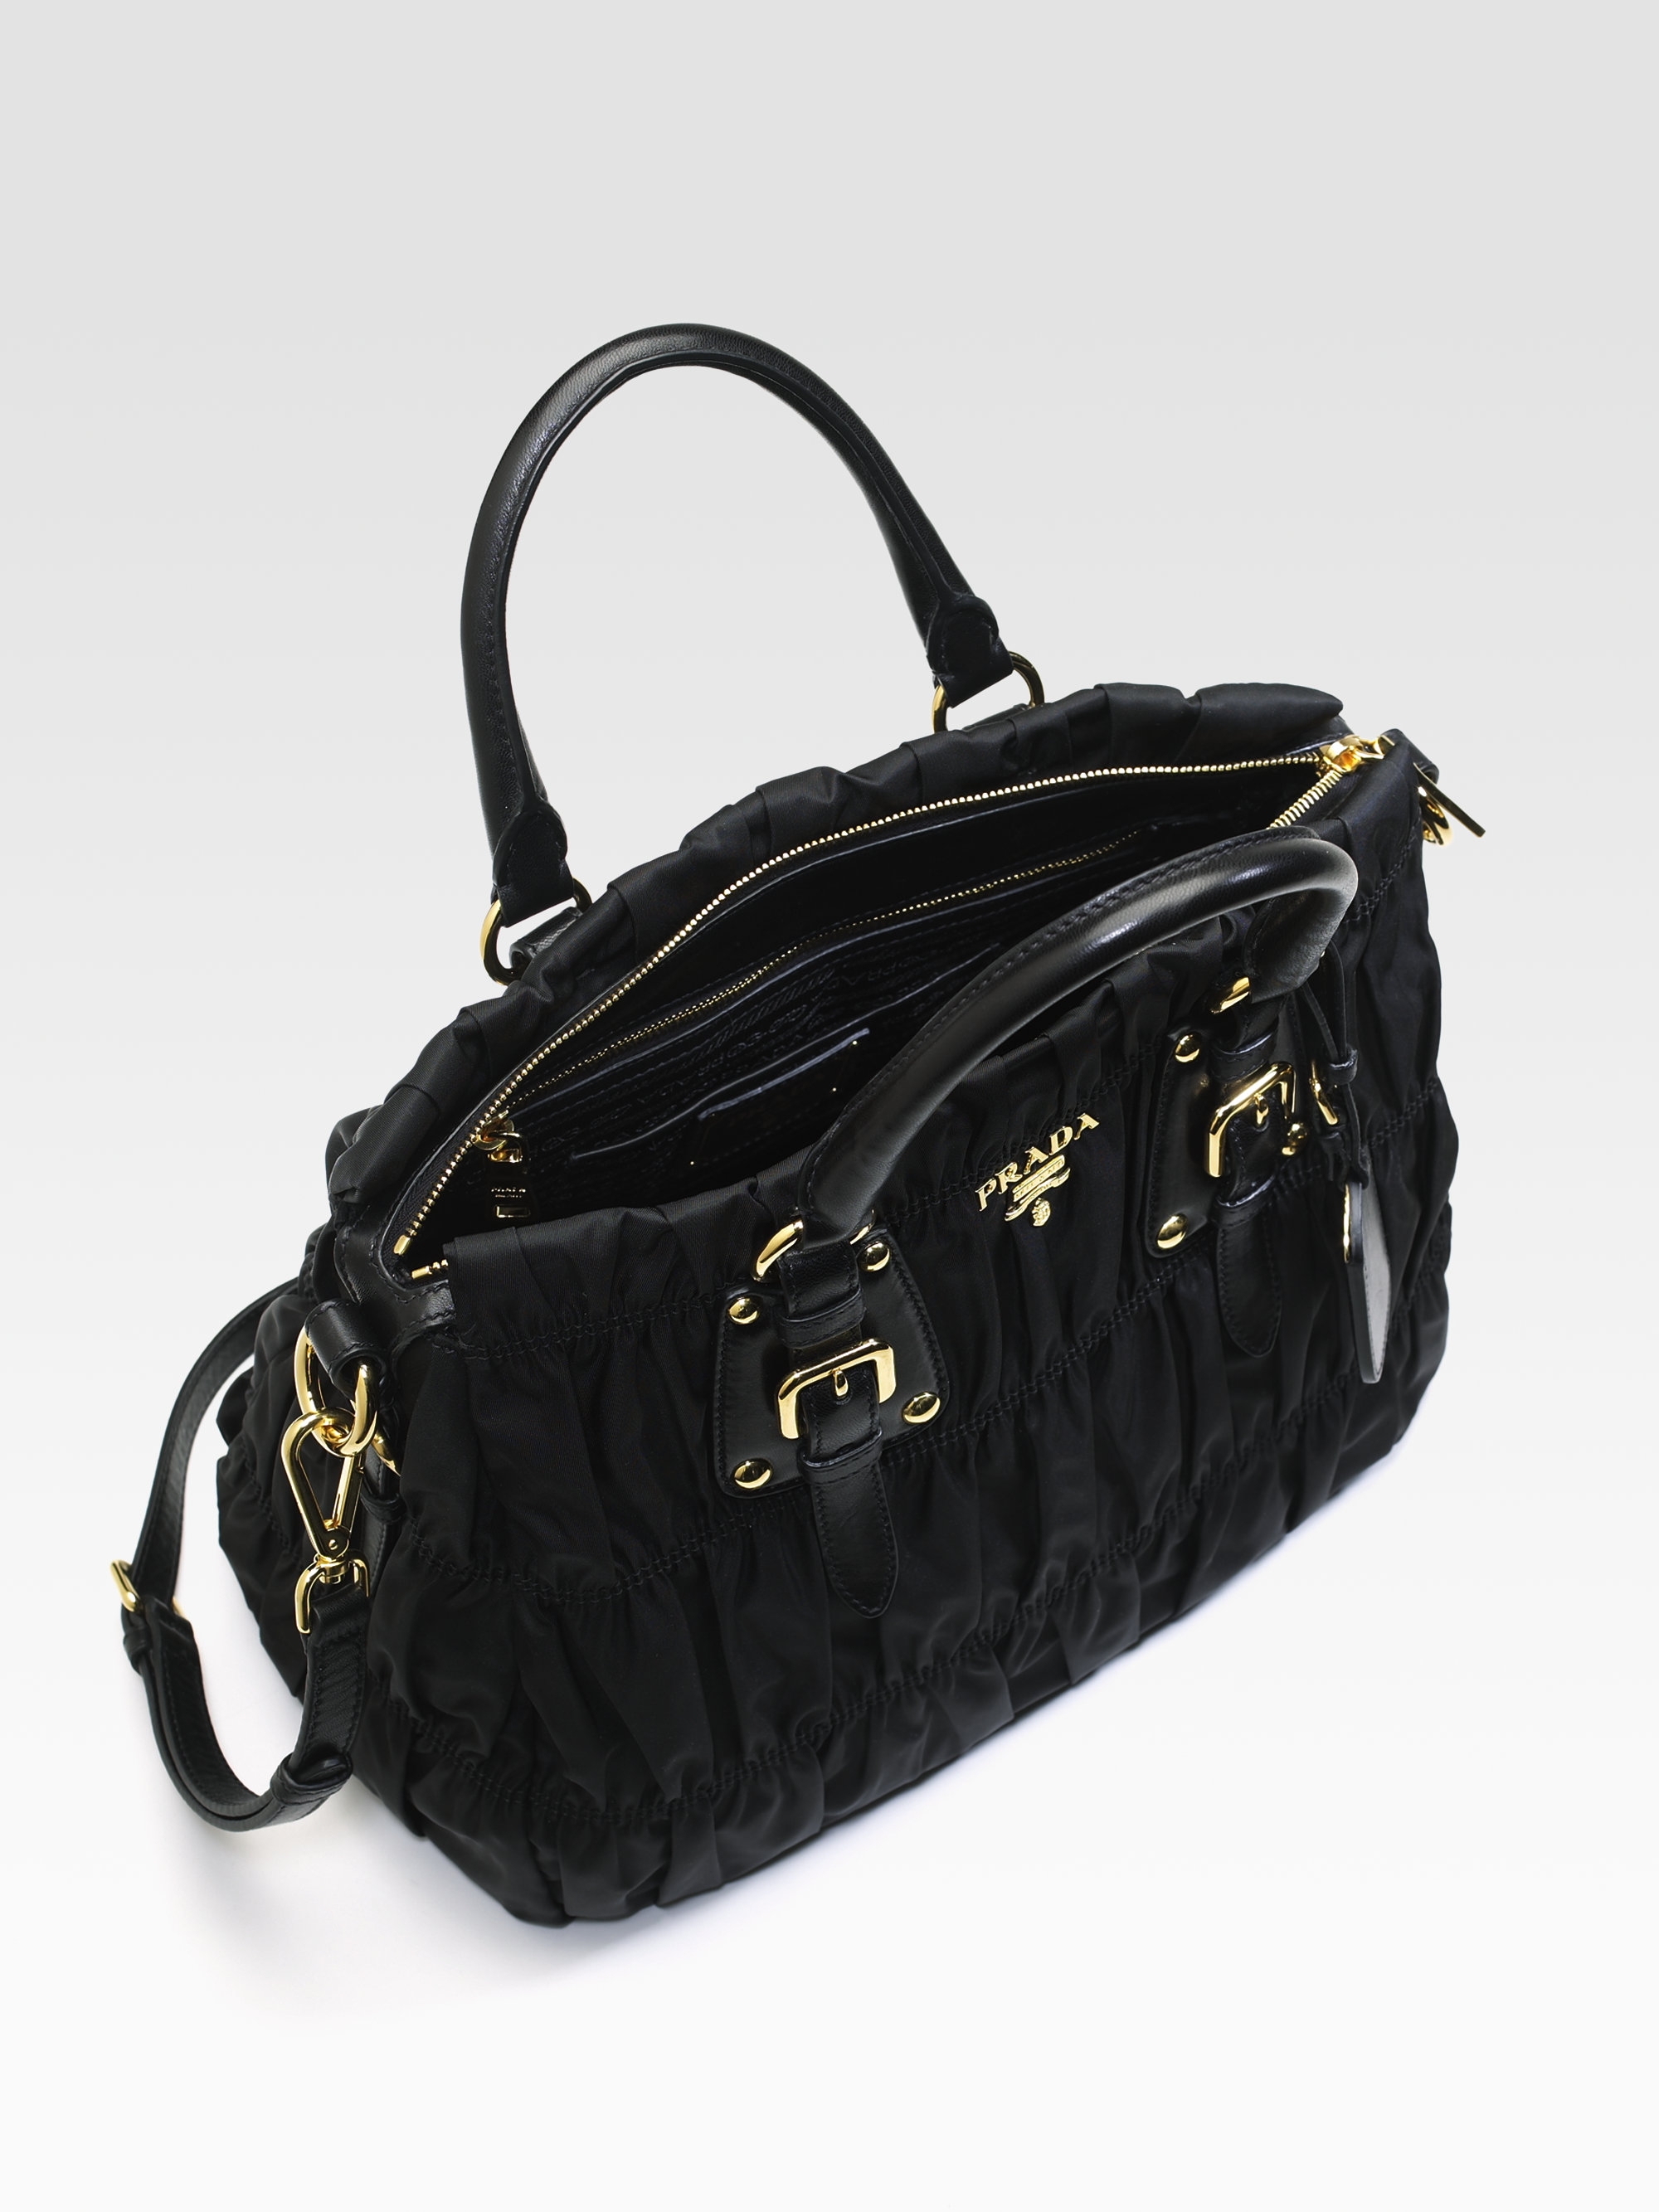 b5f5ca85041093 ... good lyst prada tessuto gaufre tote bag in black 9fdd5 1ddd9